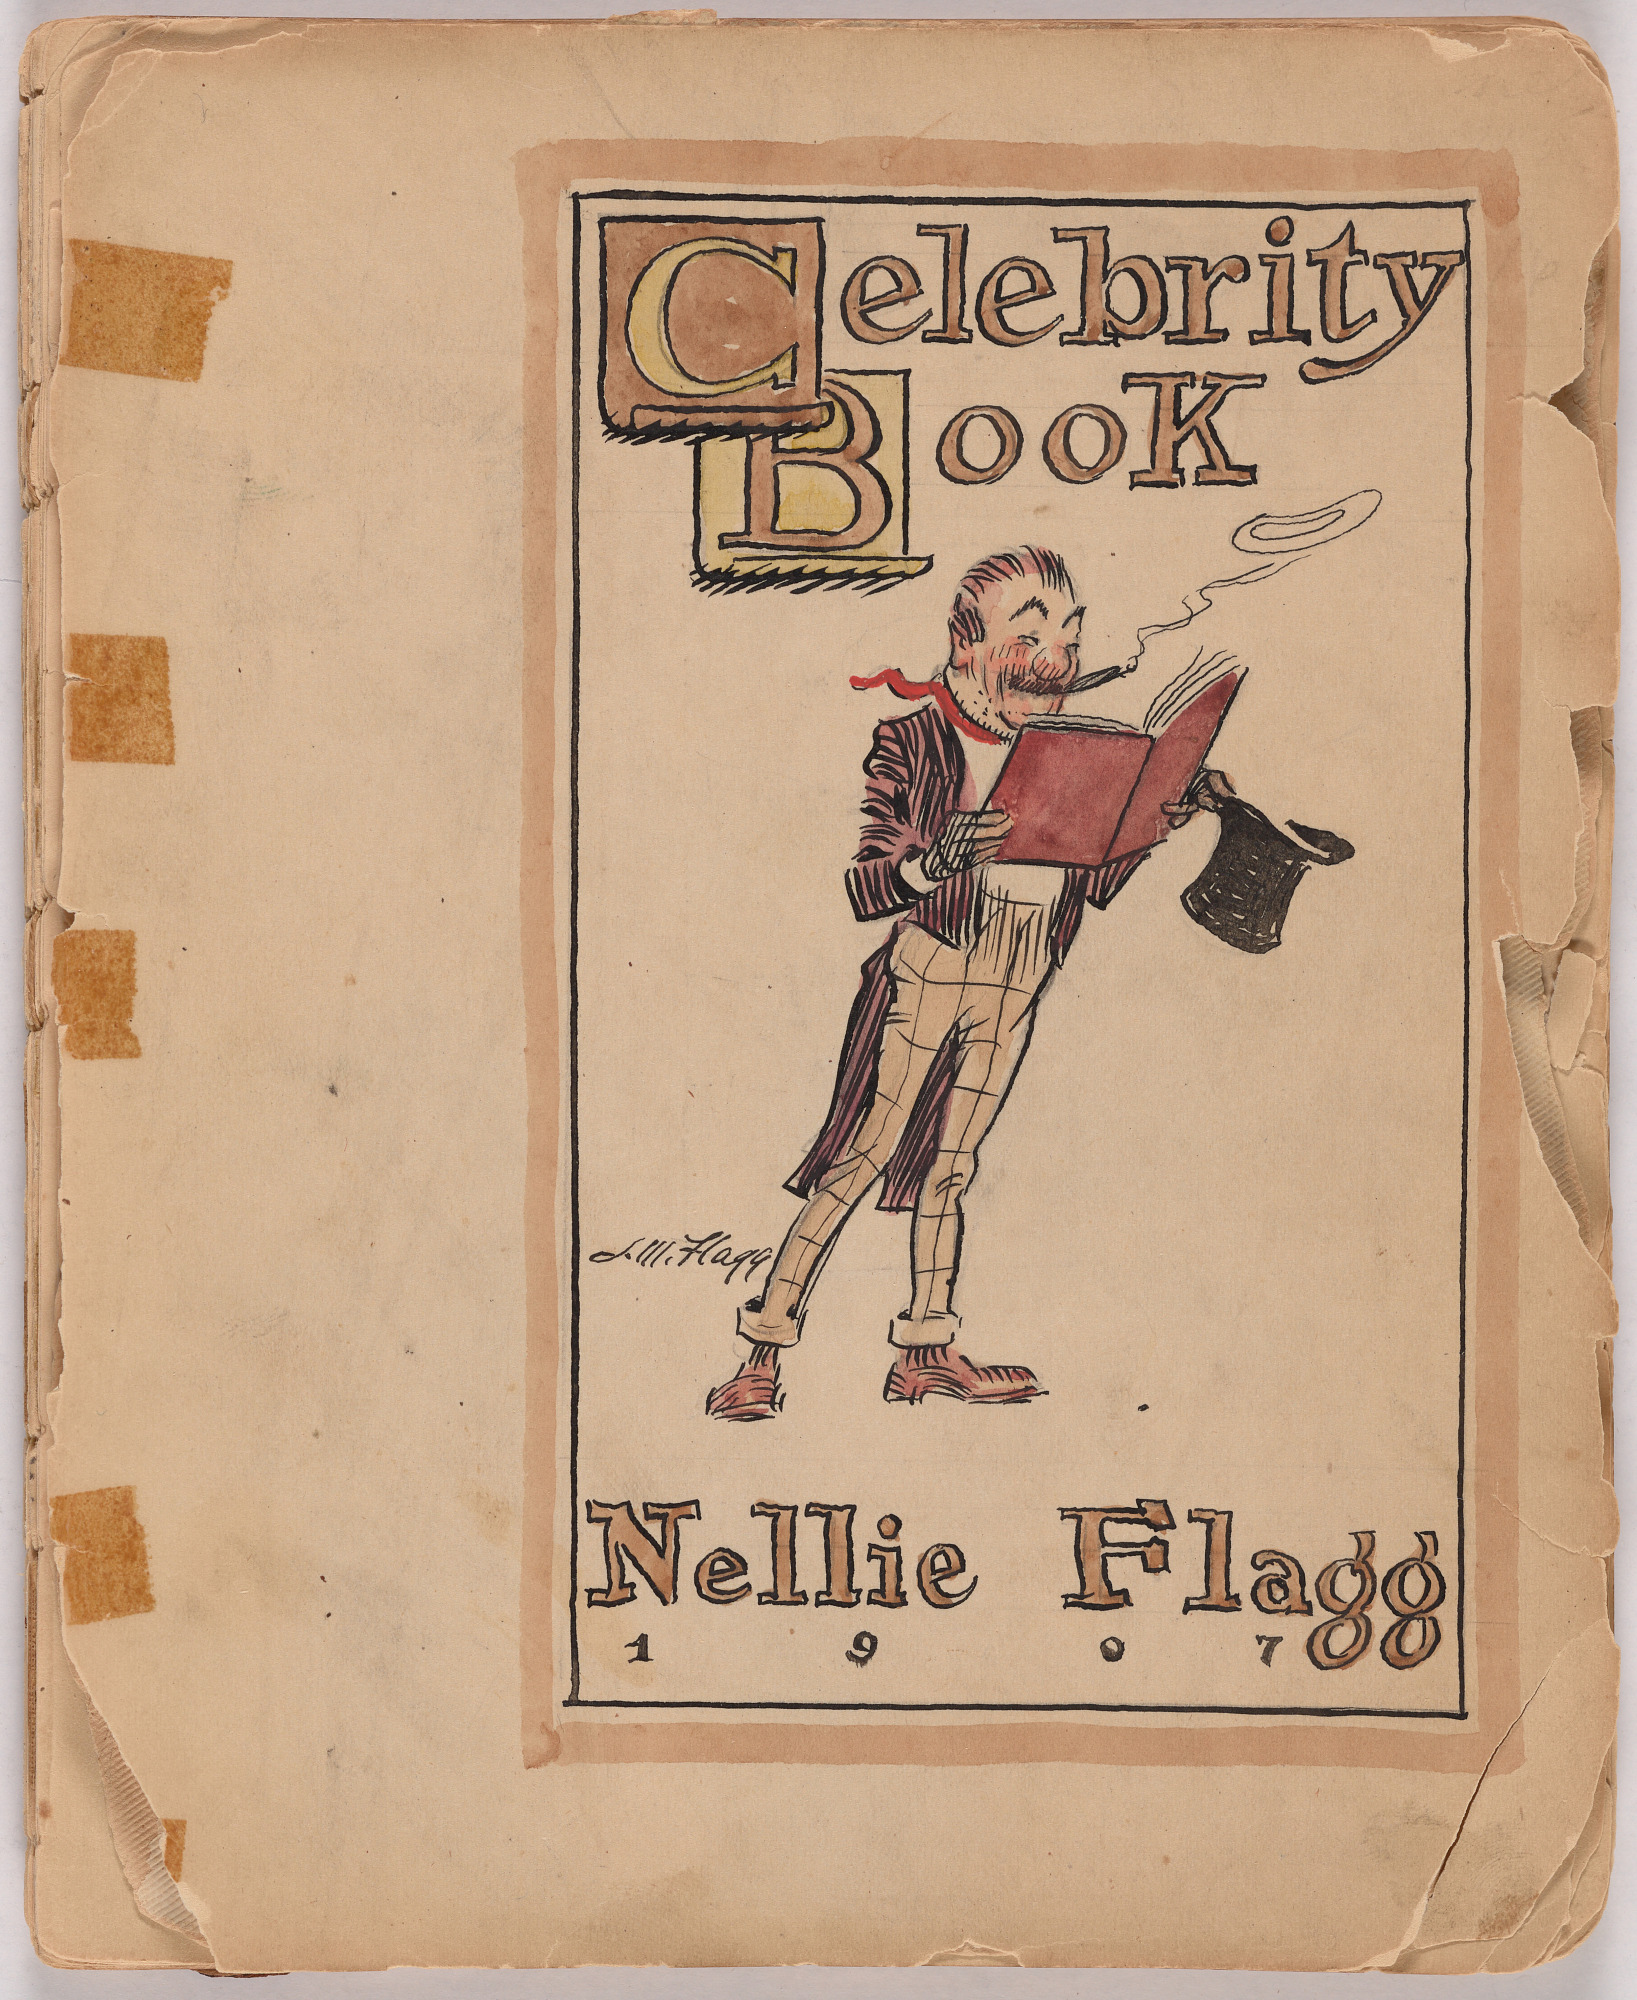 Celebrity Book of Nellie Flagg